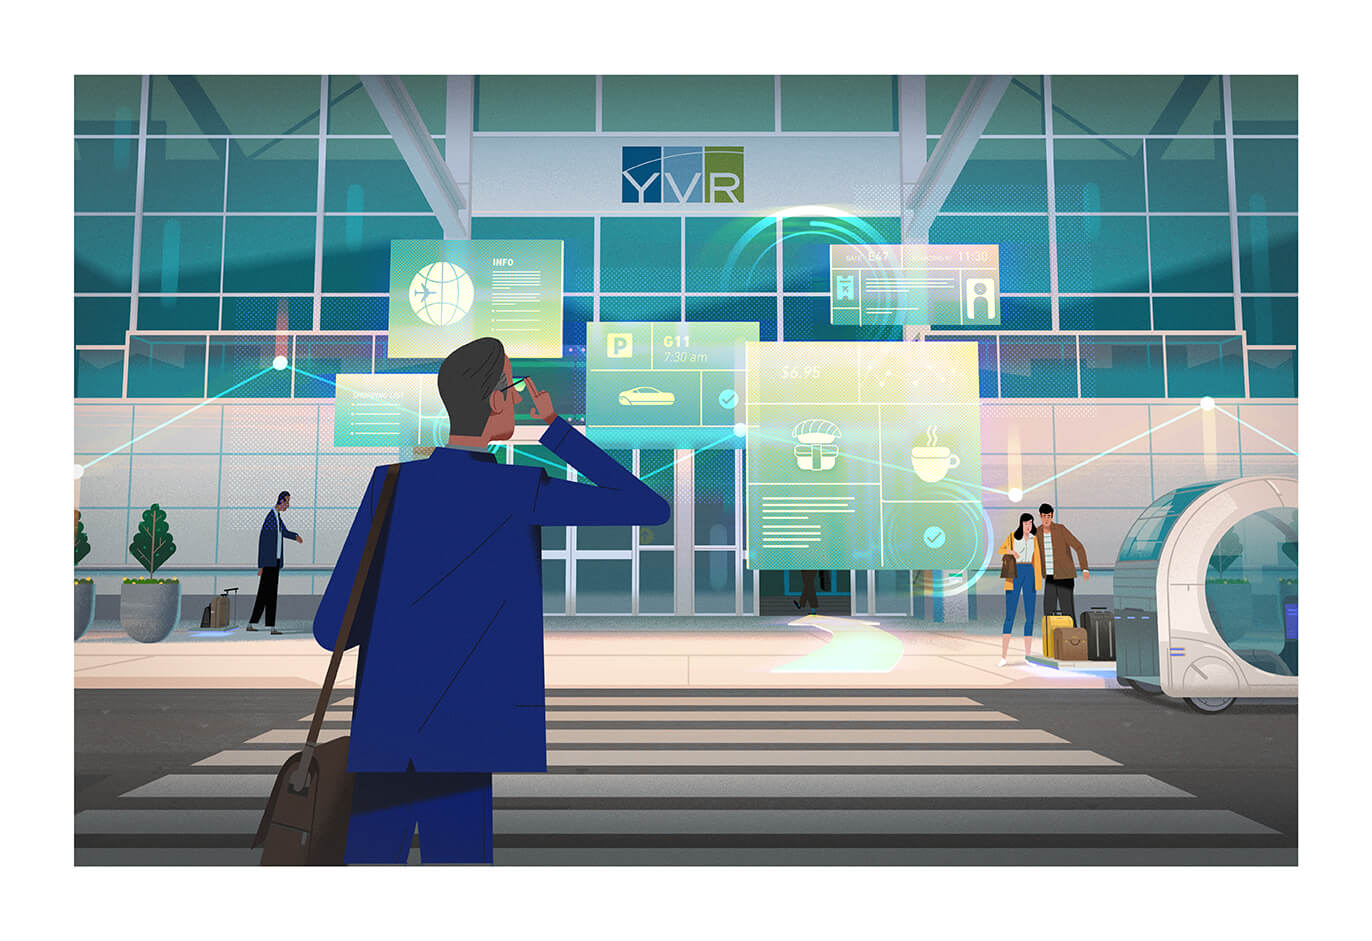 Story 1 - Welcome to YVR 2037.LR